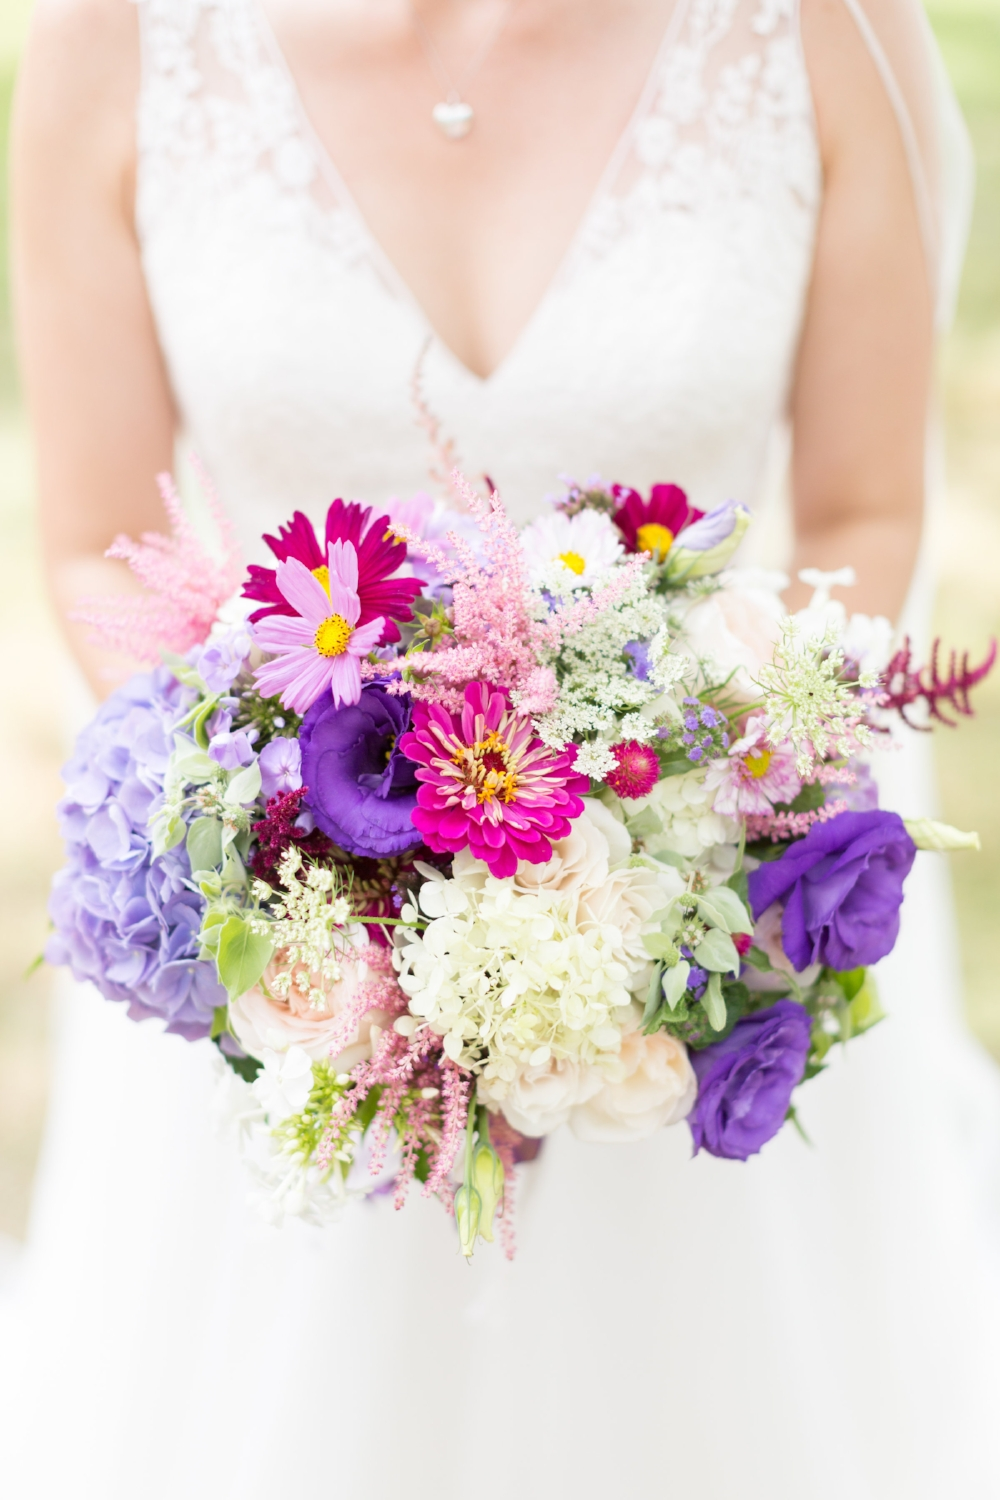 brett denfeld sincerely pete virginia wedding photographer wildflower wedding bouquet